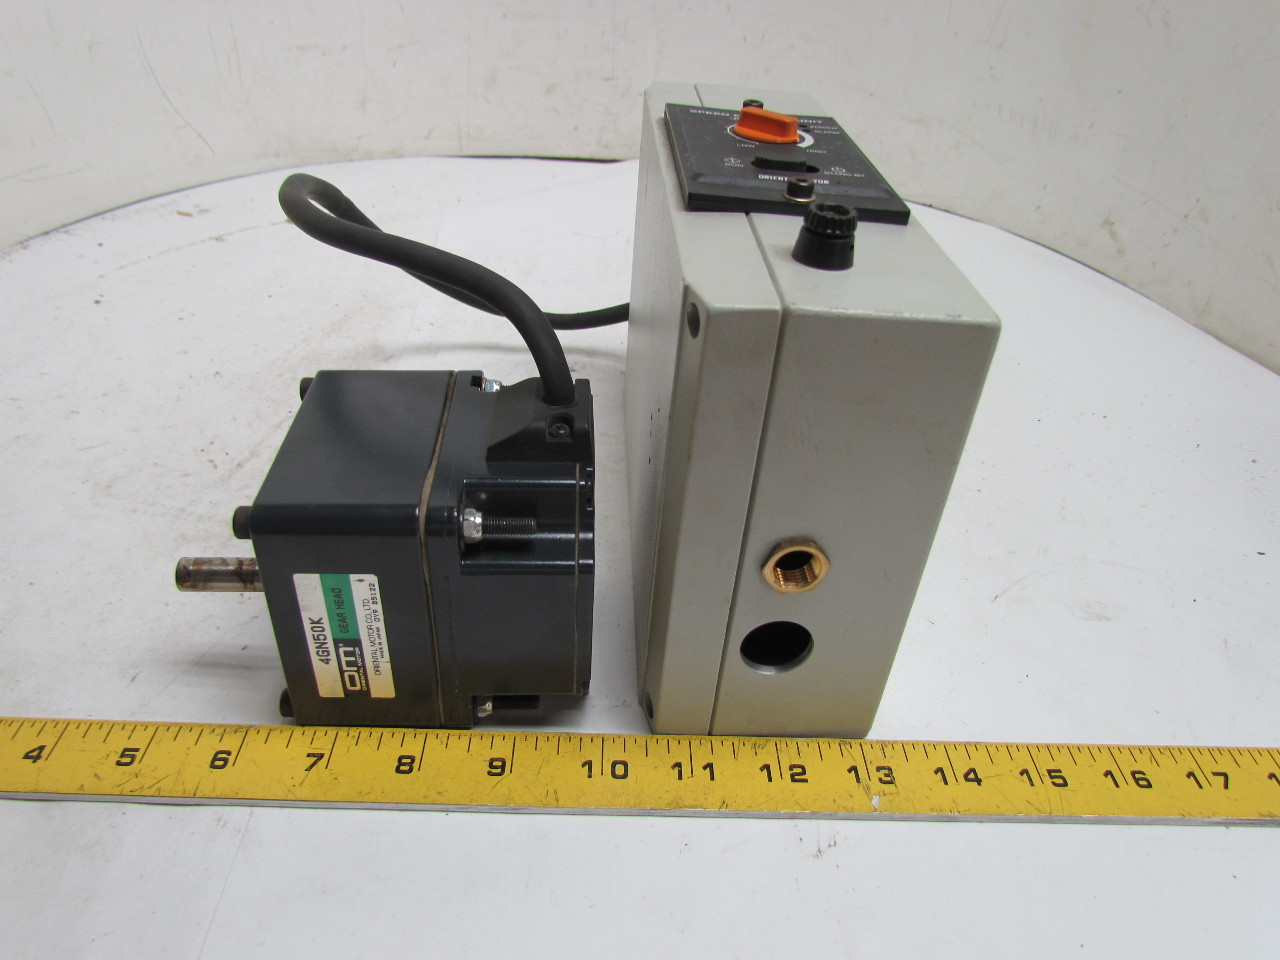 Oriental axud25cy brushless dc motor speed control 4gn50k for Brushless dc motor speed control